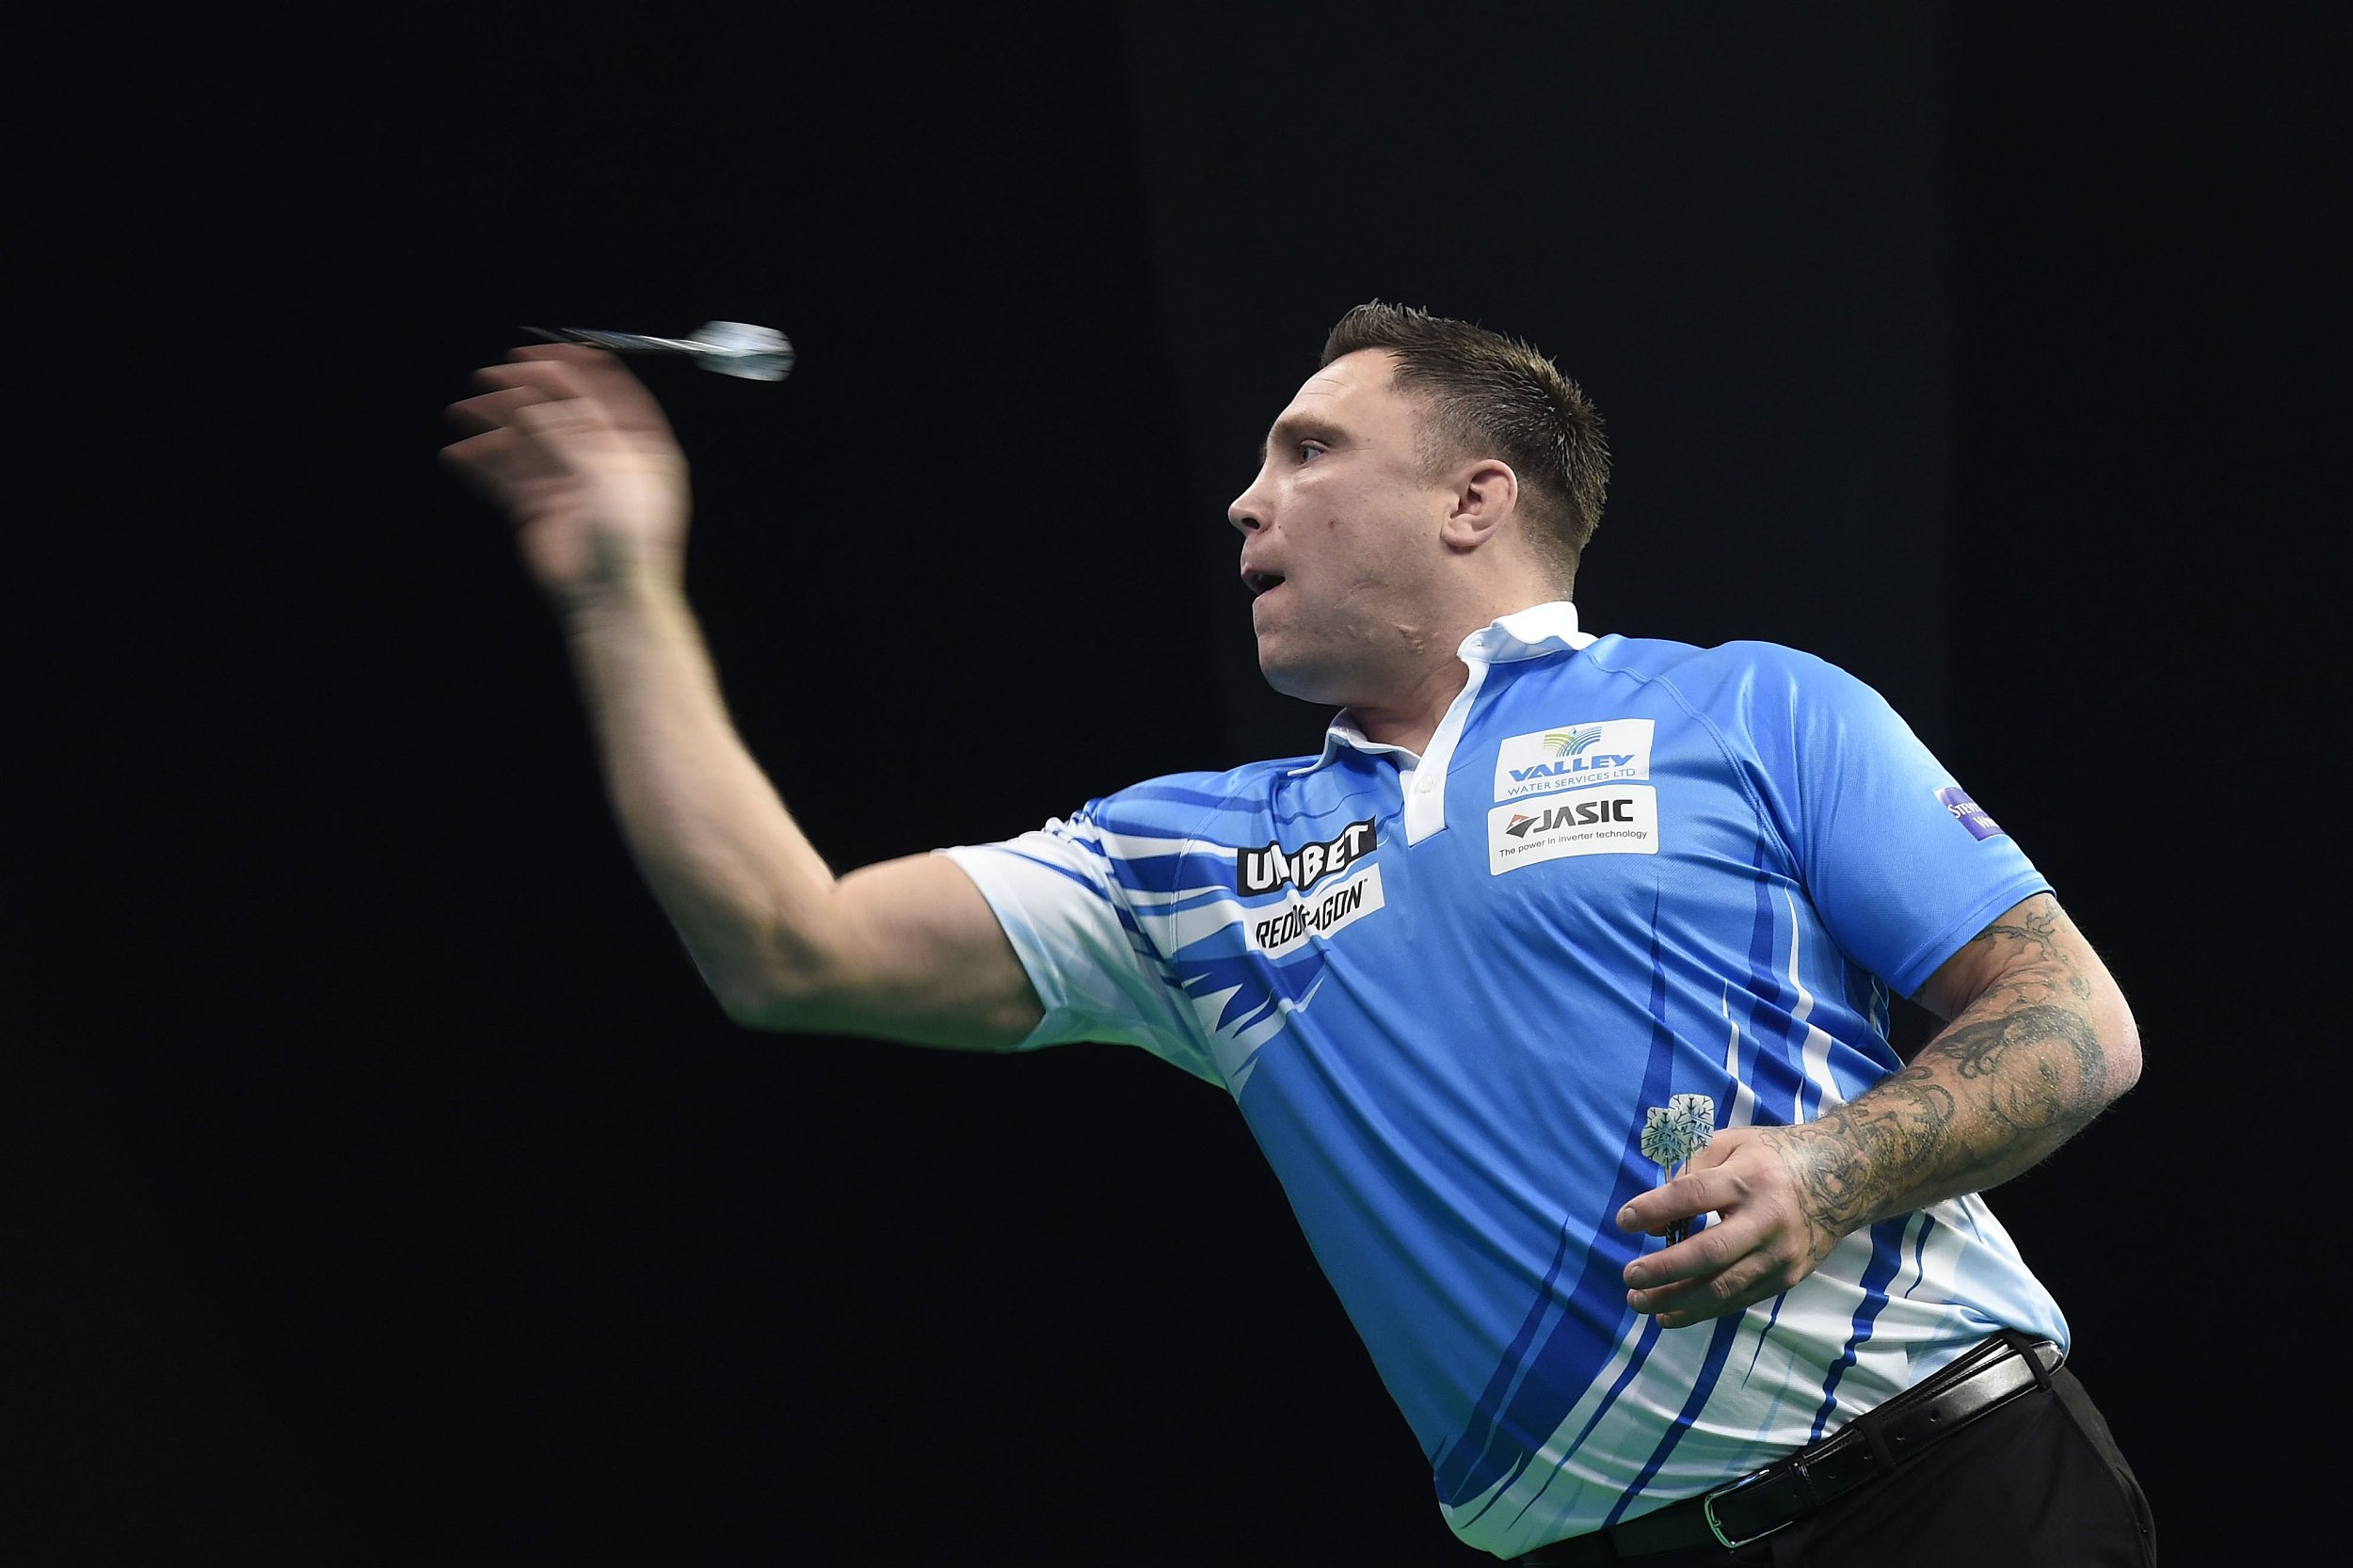 Gerwyn Price wires nine-darter in Premier League Darts draw with Luke Humphries